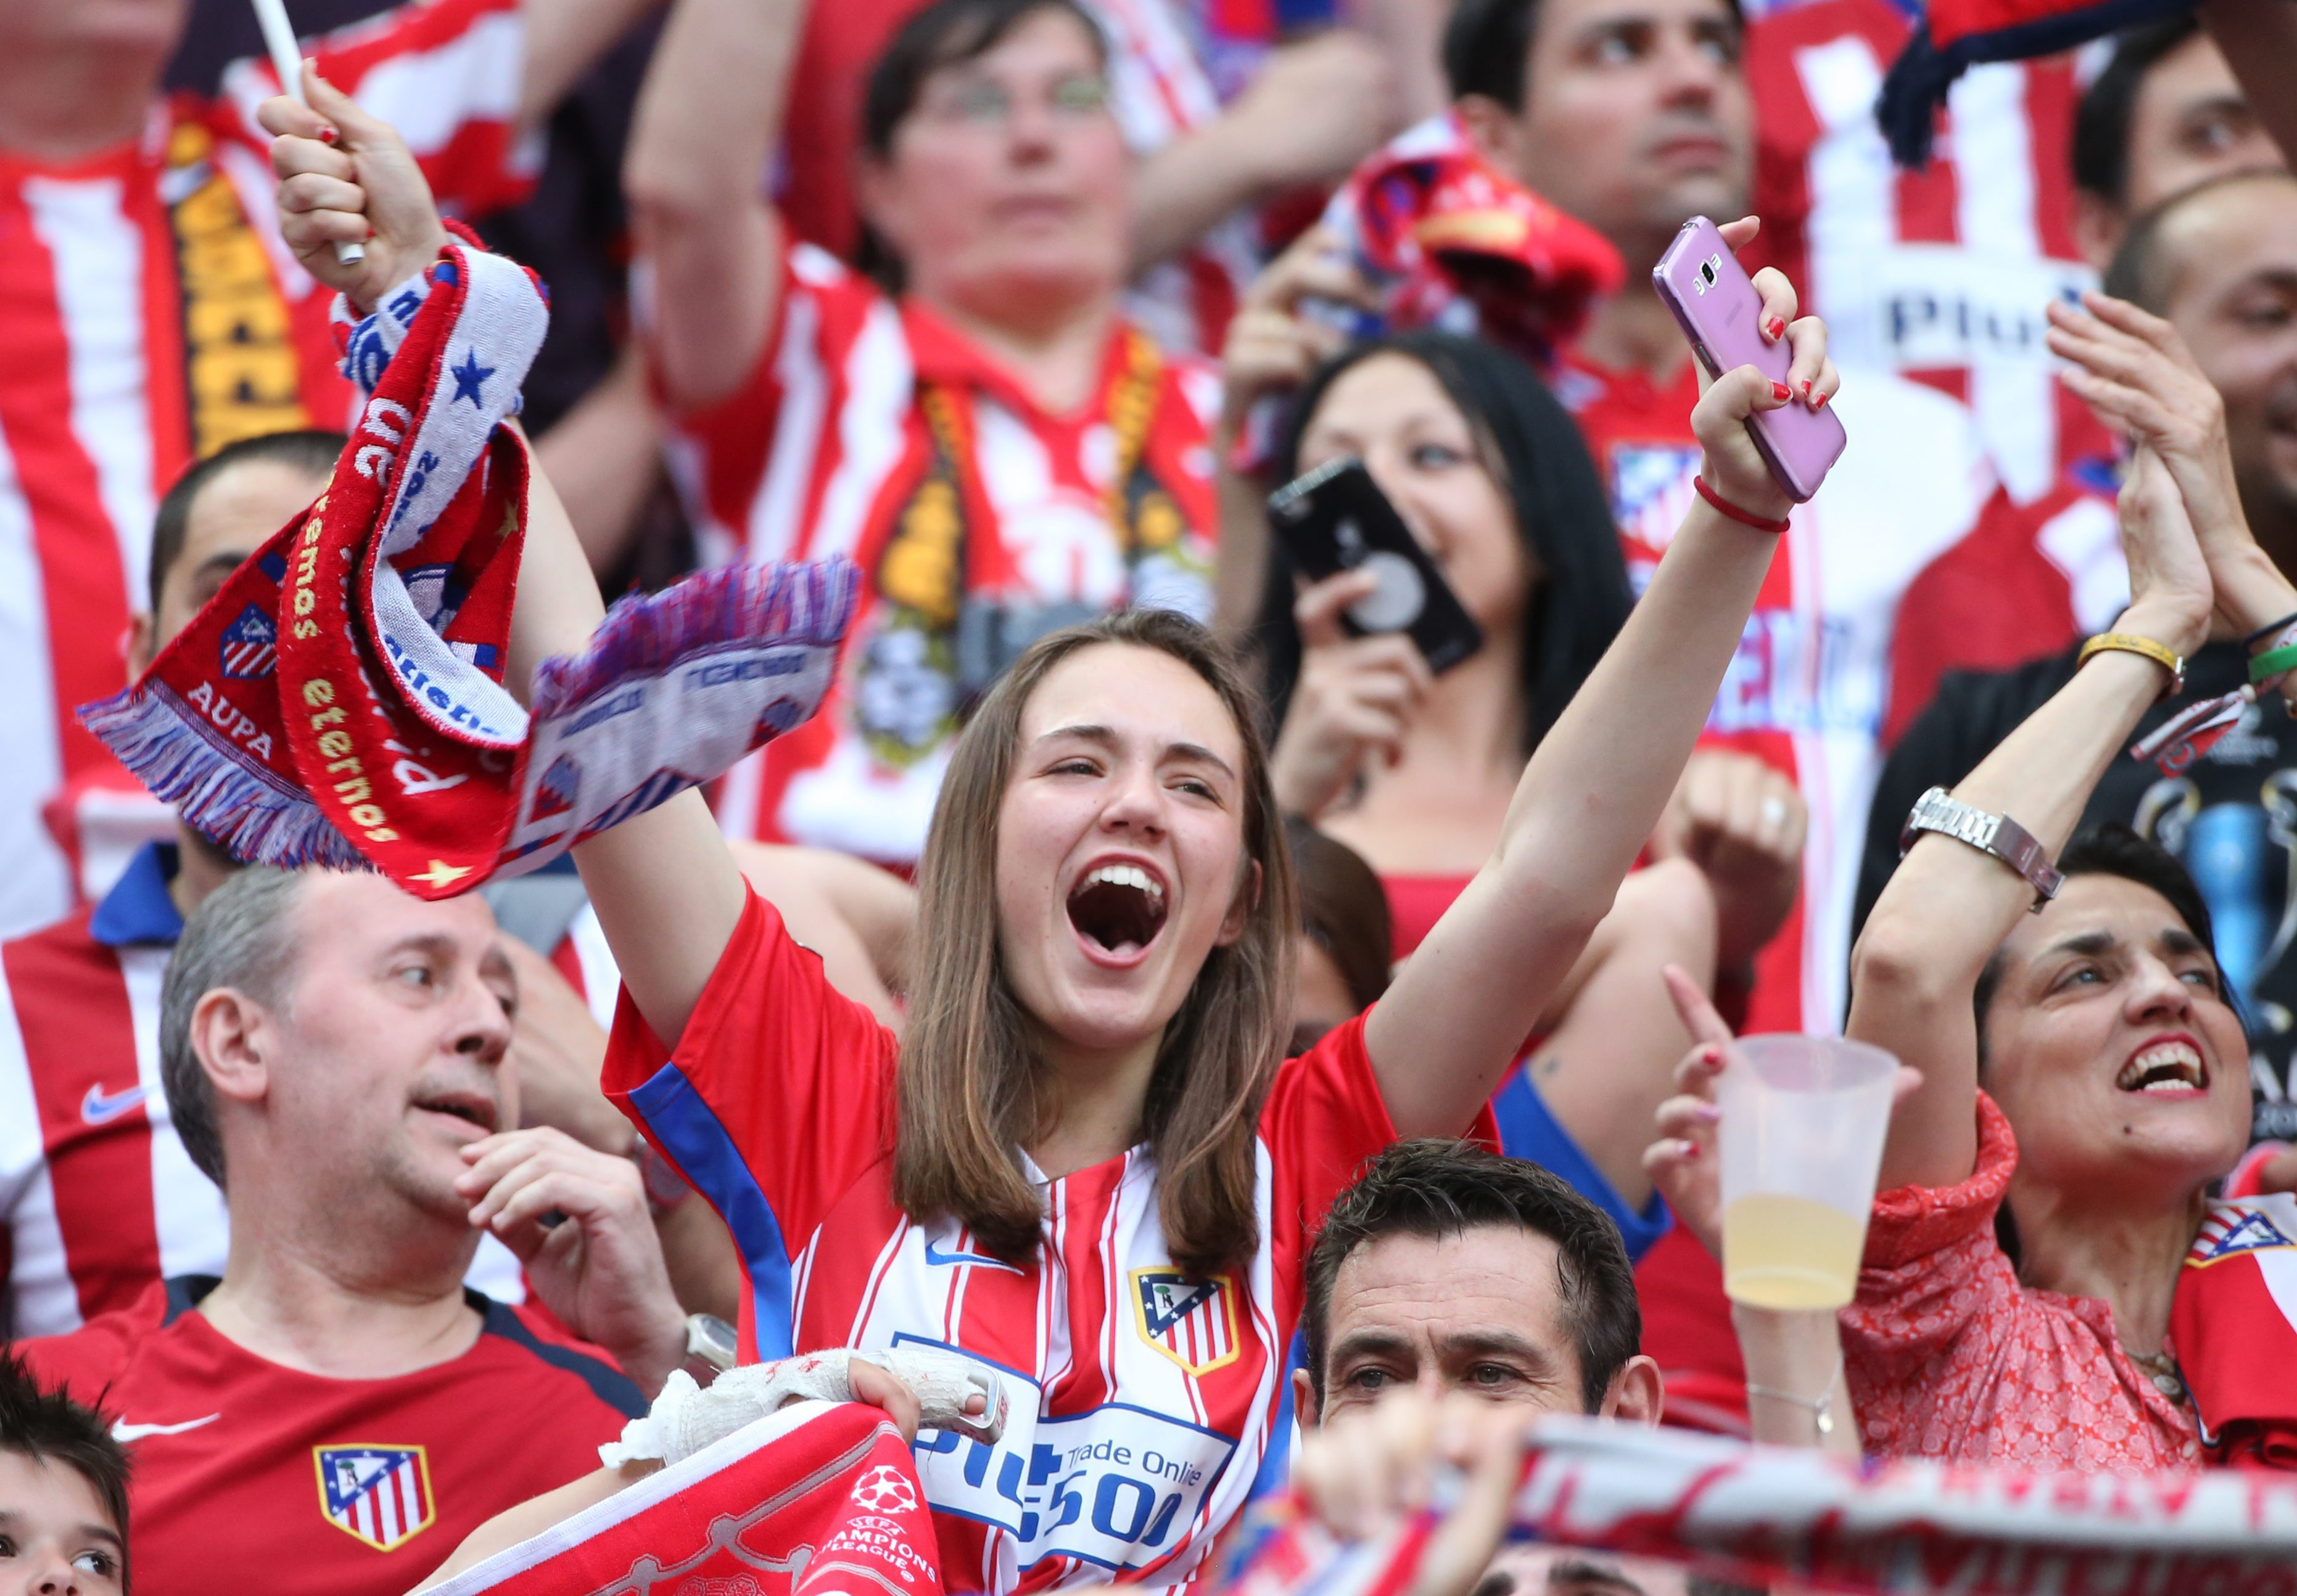 . Milan (Italy), 28/05/2016.- Atletico Madrid supporters before the UEFA Champions League Final 2016 between Real Madrid and Atletico Madrid at the Giuseppe Meazza stadium in Milan, Italy, 28 May 2016. (Liga de Campeones, Italia) EFE/EPA/OLIVER WEIKEN